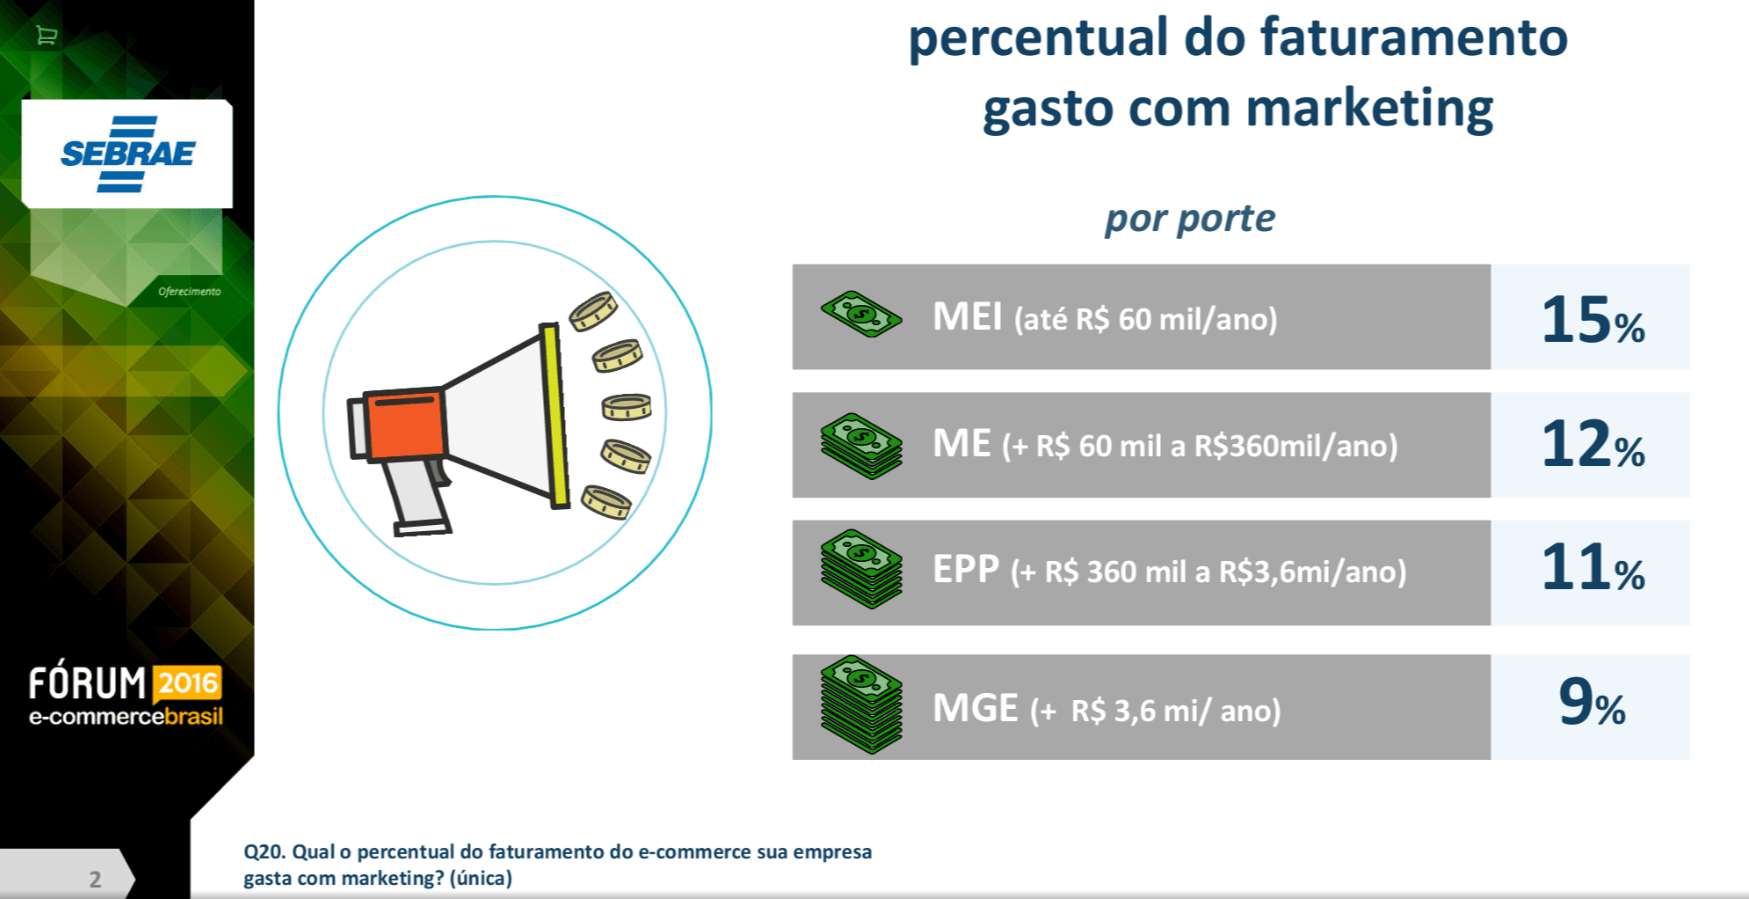 percentual do faturamento gasto com marketing